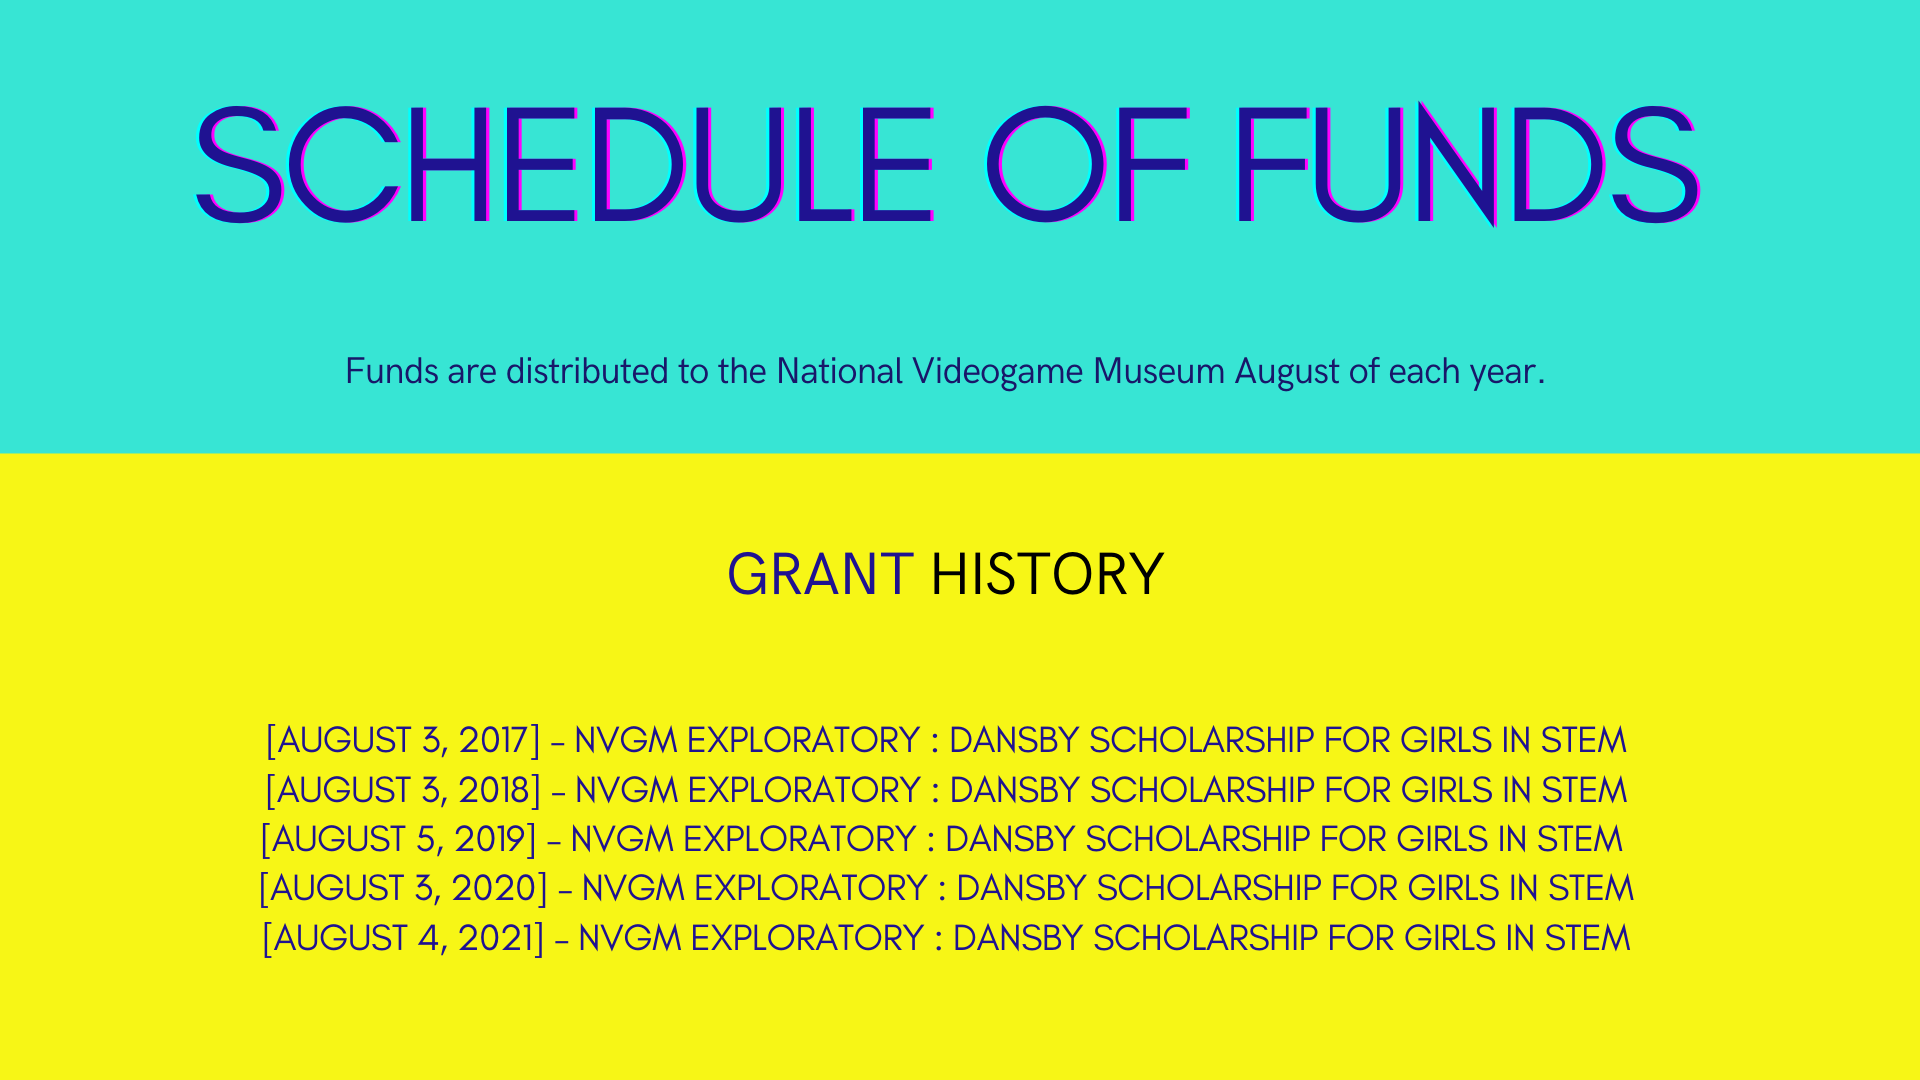 Schedule of Funds